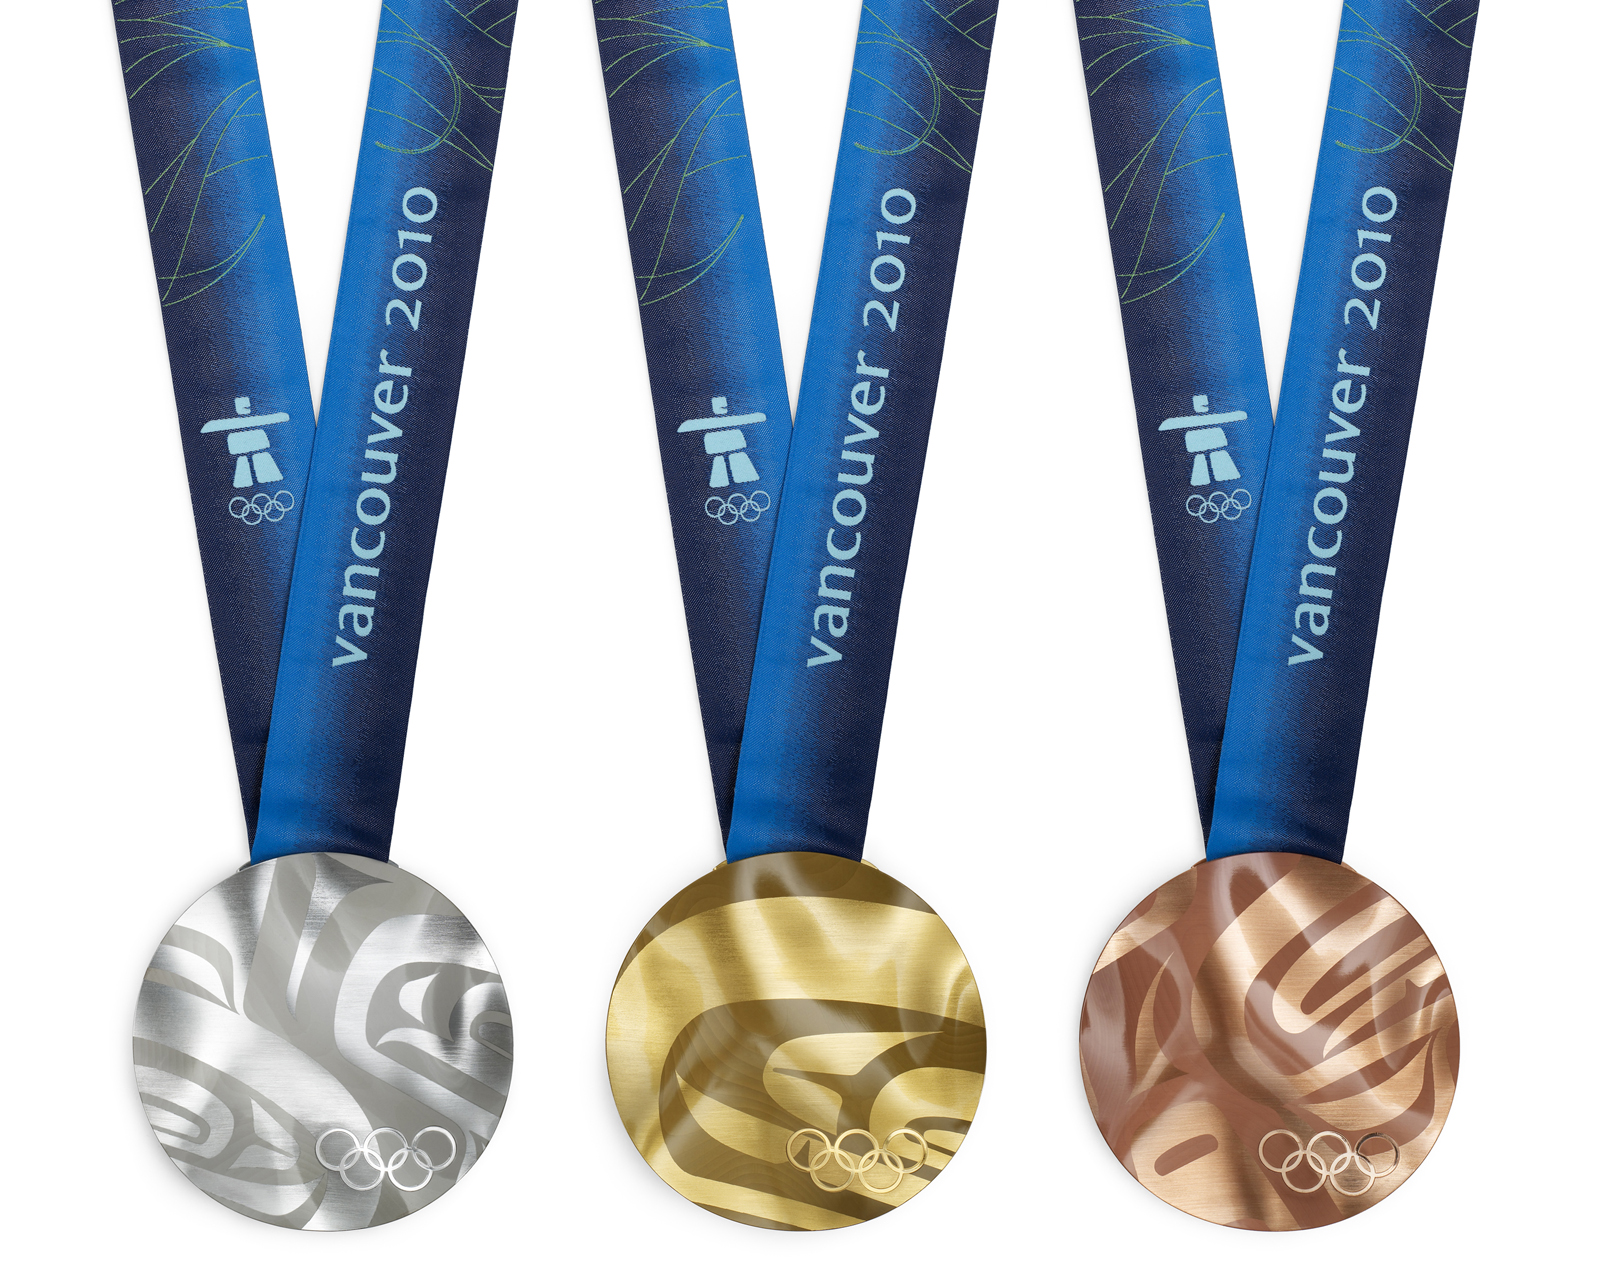 Arbel: Due to manufacturing constraints, conservatism, and budget concerns, the design was addressed and re-purposed several times.The final production version has an undulating surface that evokes Vancouver's landscape. Individual medals were laser etc